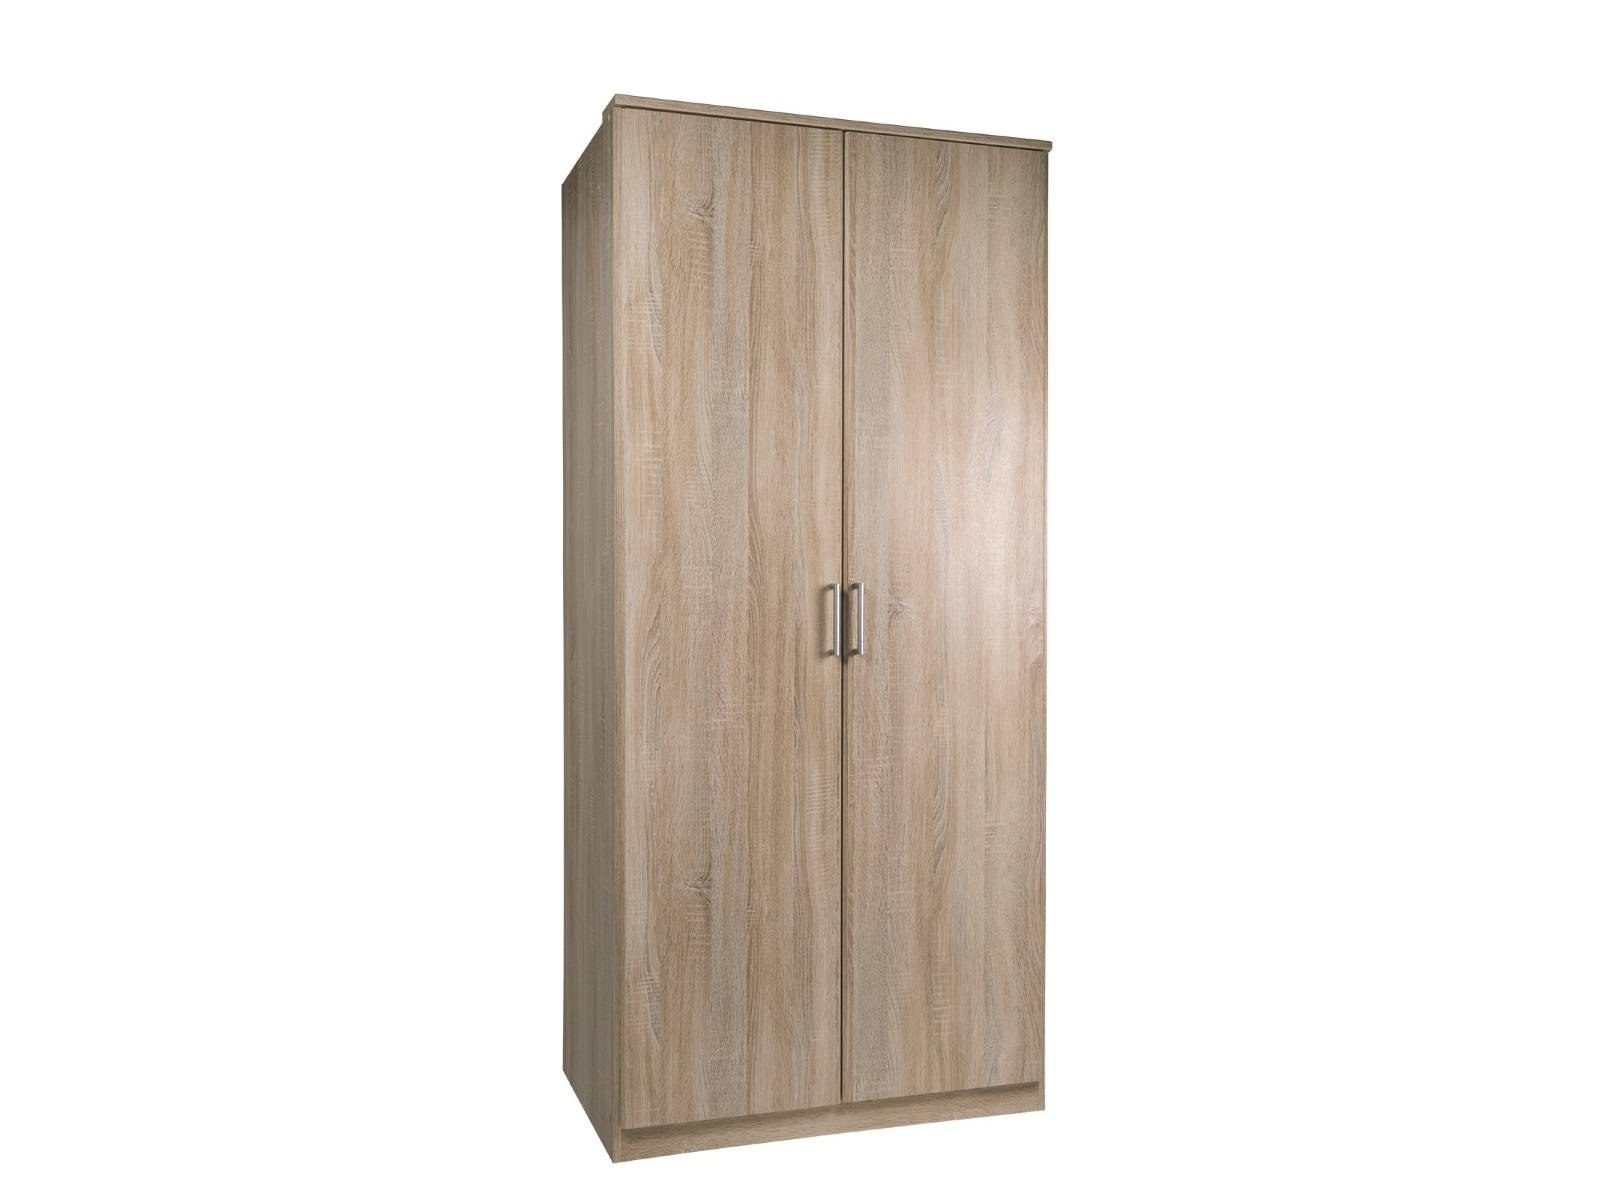 Cheap Wardrobes | Bedroom Furniture For Sale | Double Wardrobe Inside Cheap Double Wardrobes (View 6 of 15)